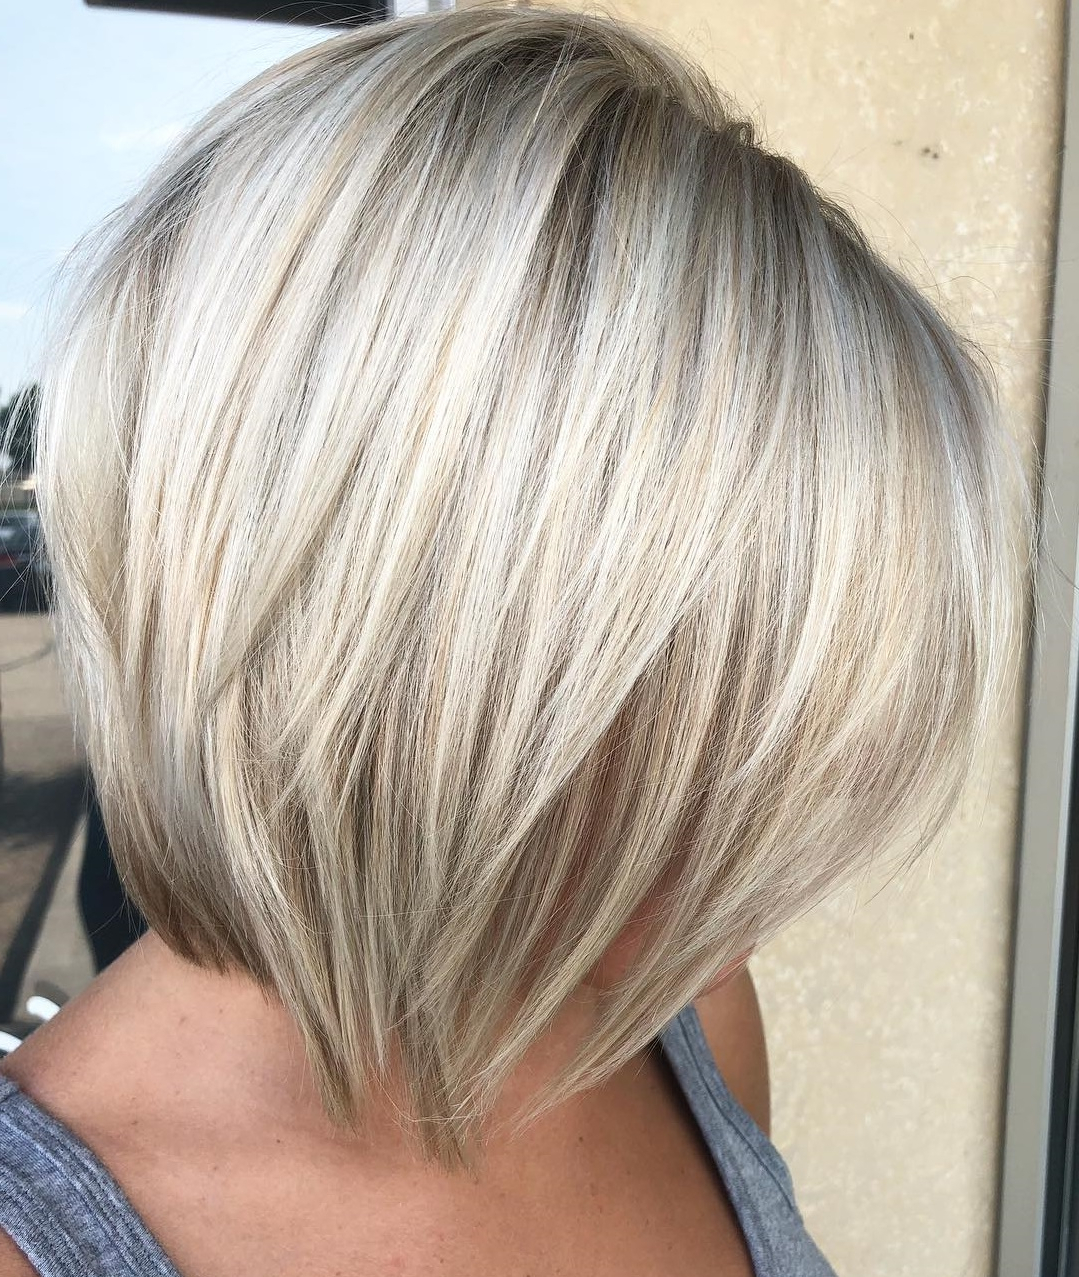 45 Short Hairstyles For Fine Hair To Rock In 2019 Intended For Preferred Smart Short Bob Hairstyles With Choppy Ends (View 2 of 20)